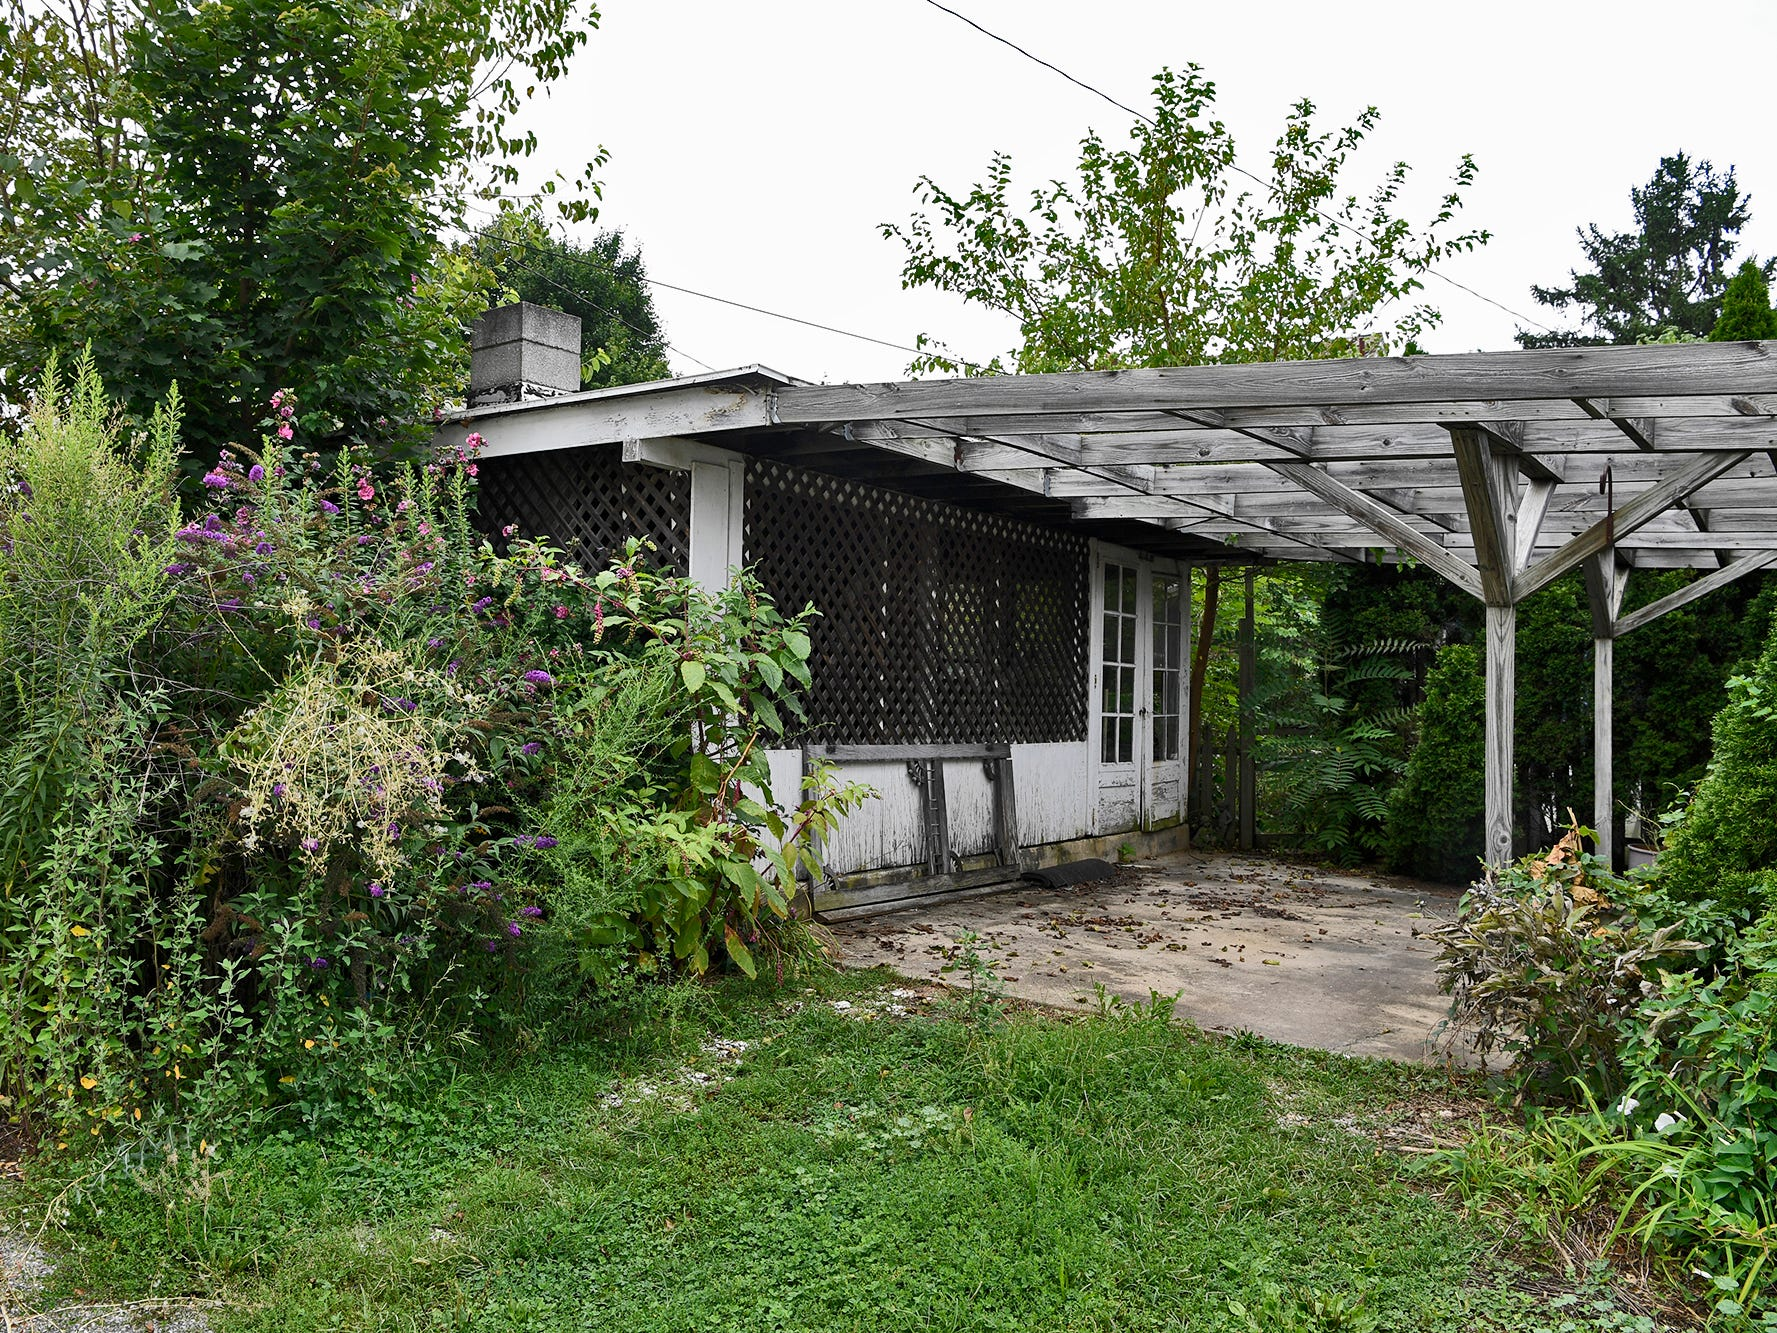 A residential property at the corner of Orange and N. Clinton Streets is overgrown and in disrepair according to West York Borough Codes Enforcement Officer James Hope.  Police Chief Matthew Millsaps says that there are at least 30 properties currently being pursued for cleanup. Wednesday, August 14, 2018. John A. Pavoncello photo